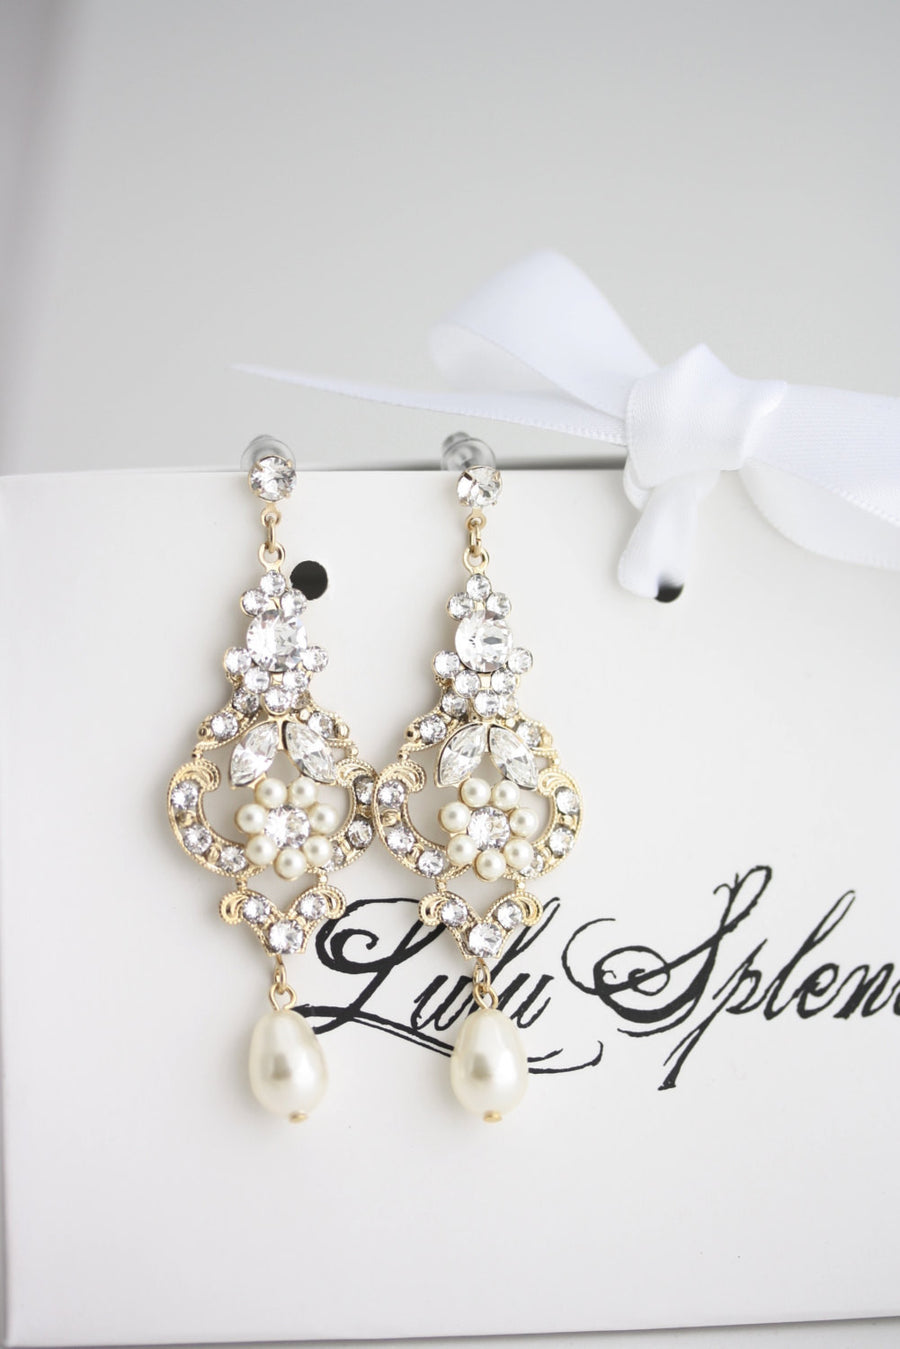 Amy Wedding Earrings - Lulu Splendor